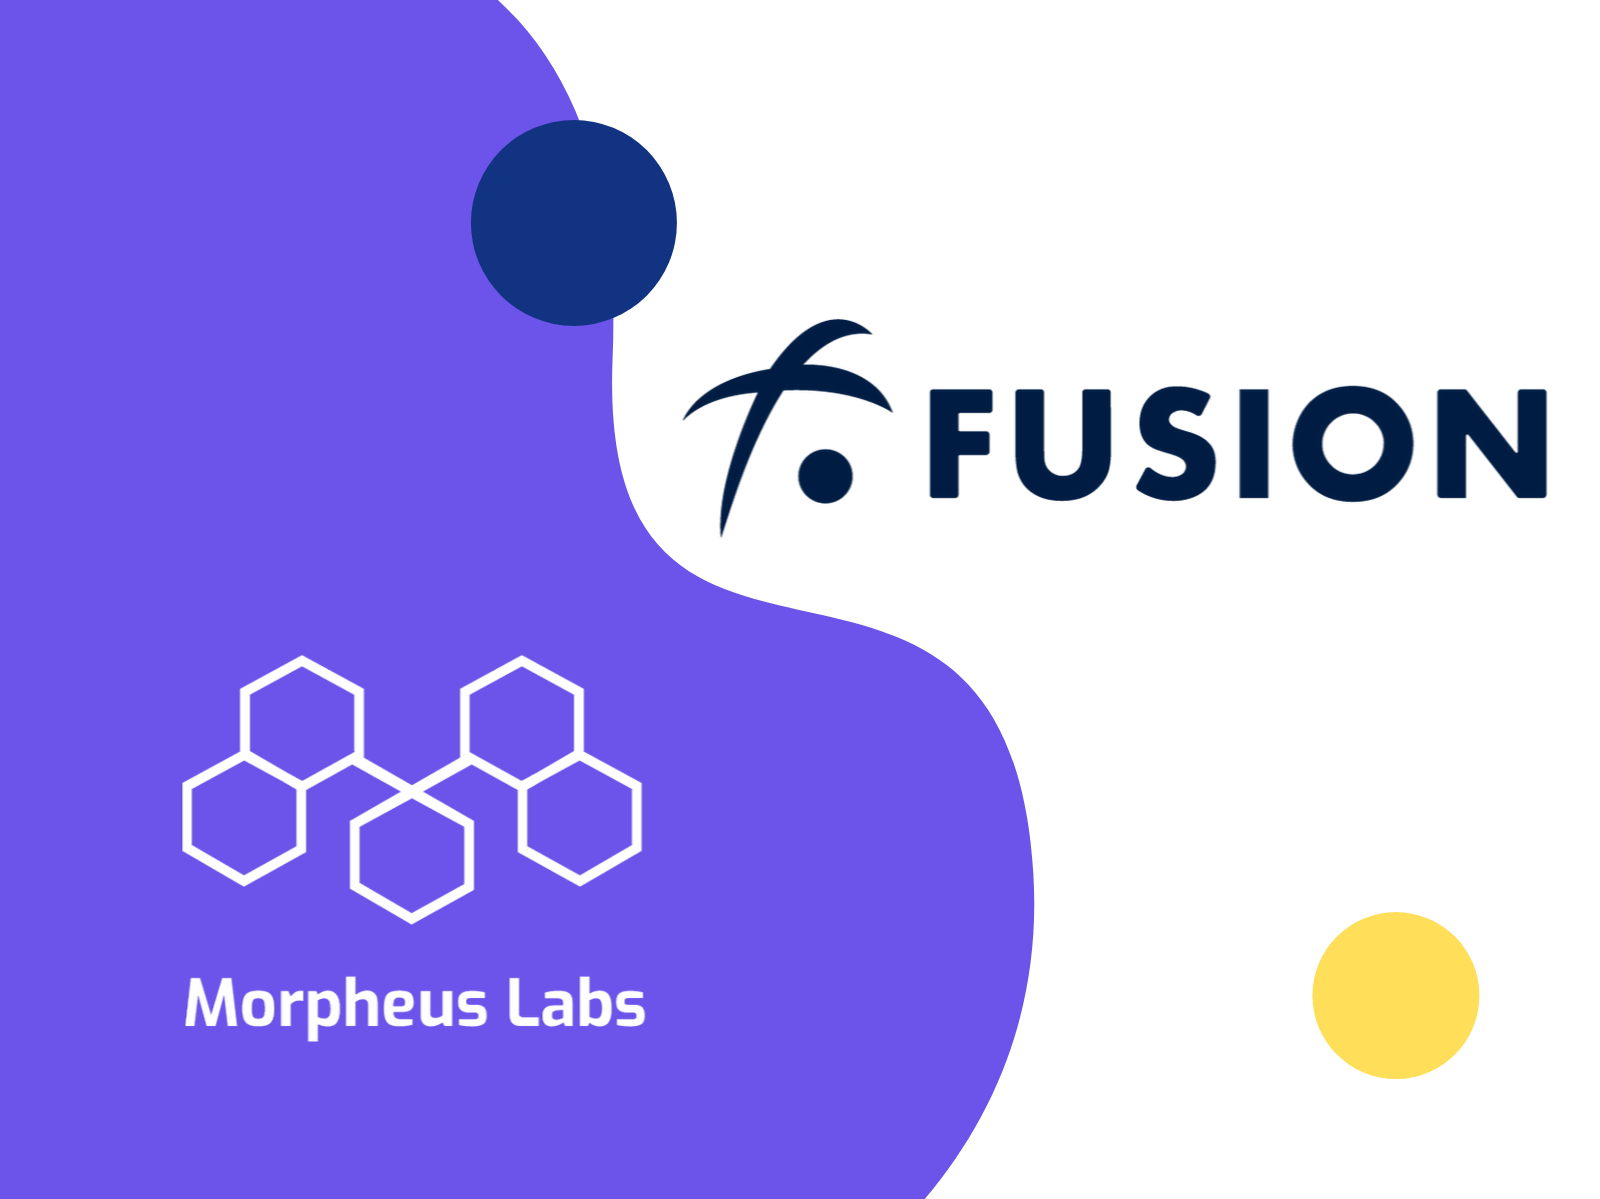 Morpheus Labs and Fusion Join Hands To Harness the Potential of the Open-Source Community